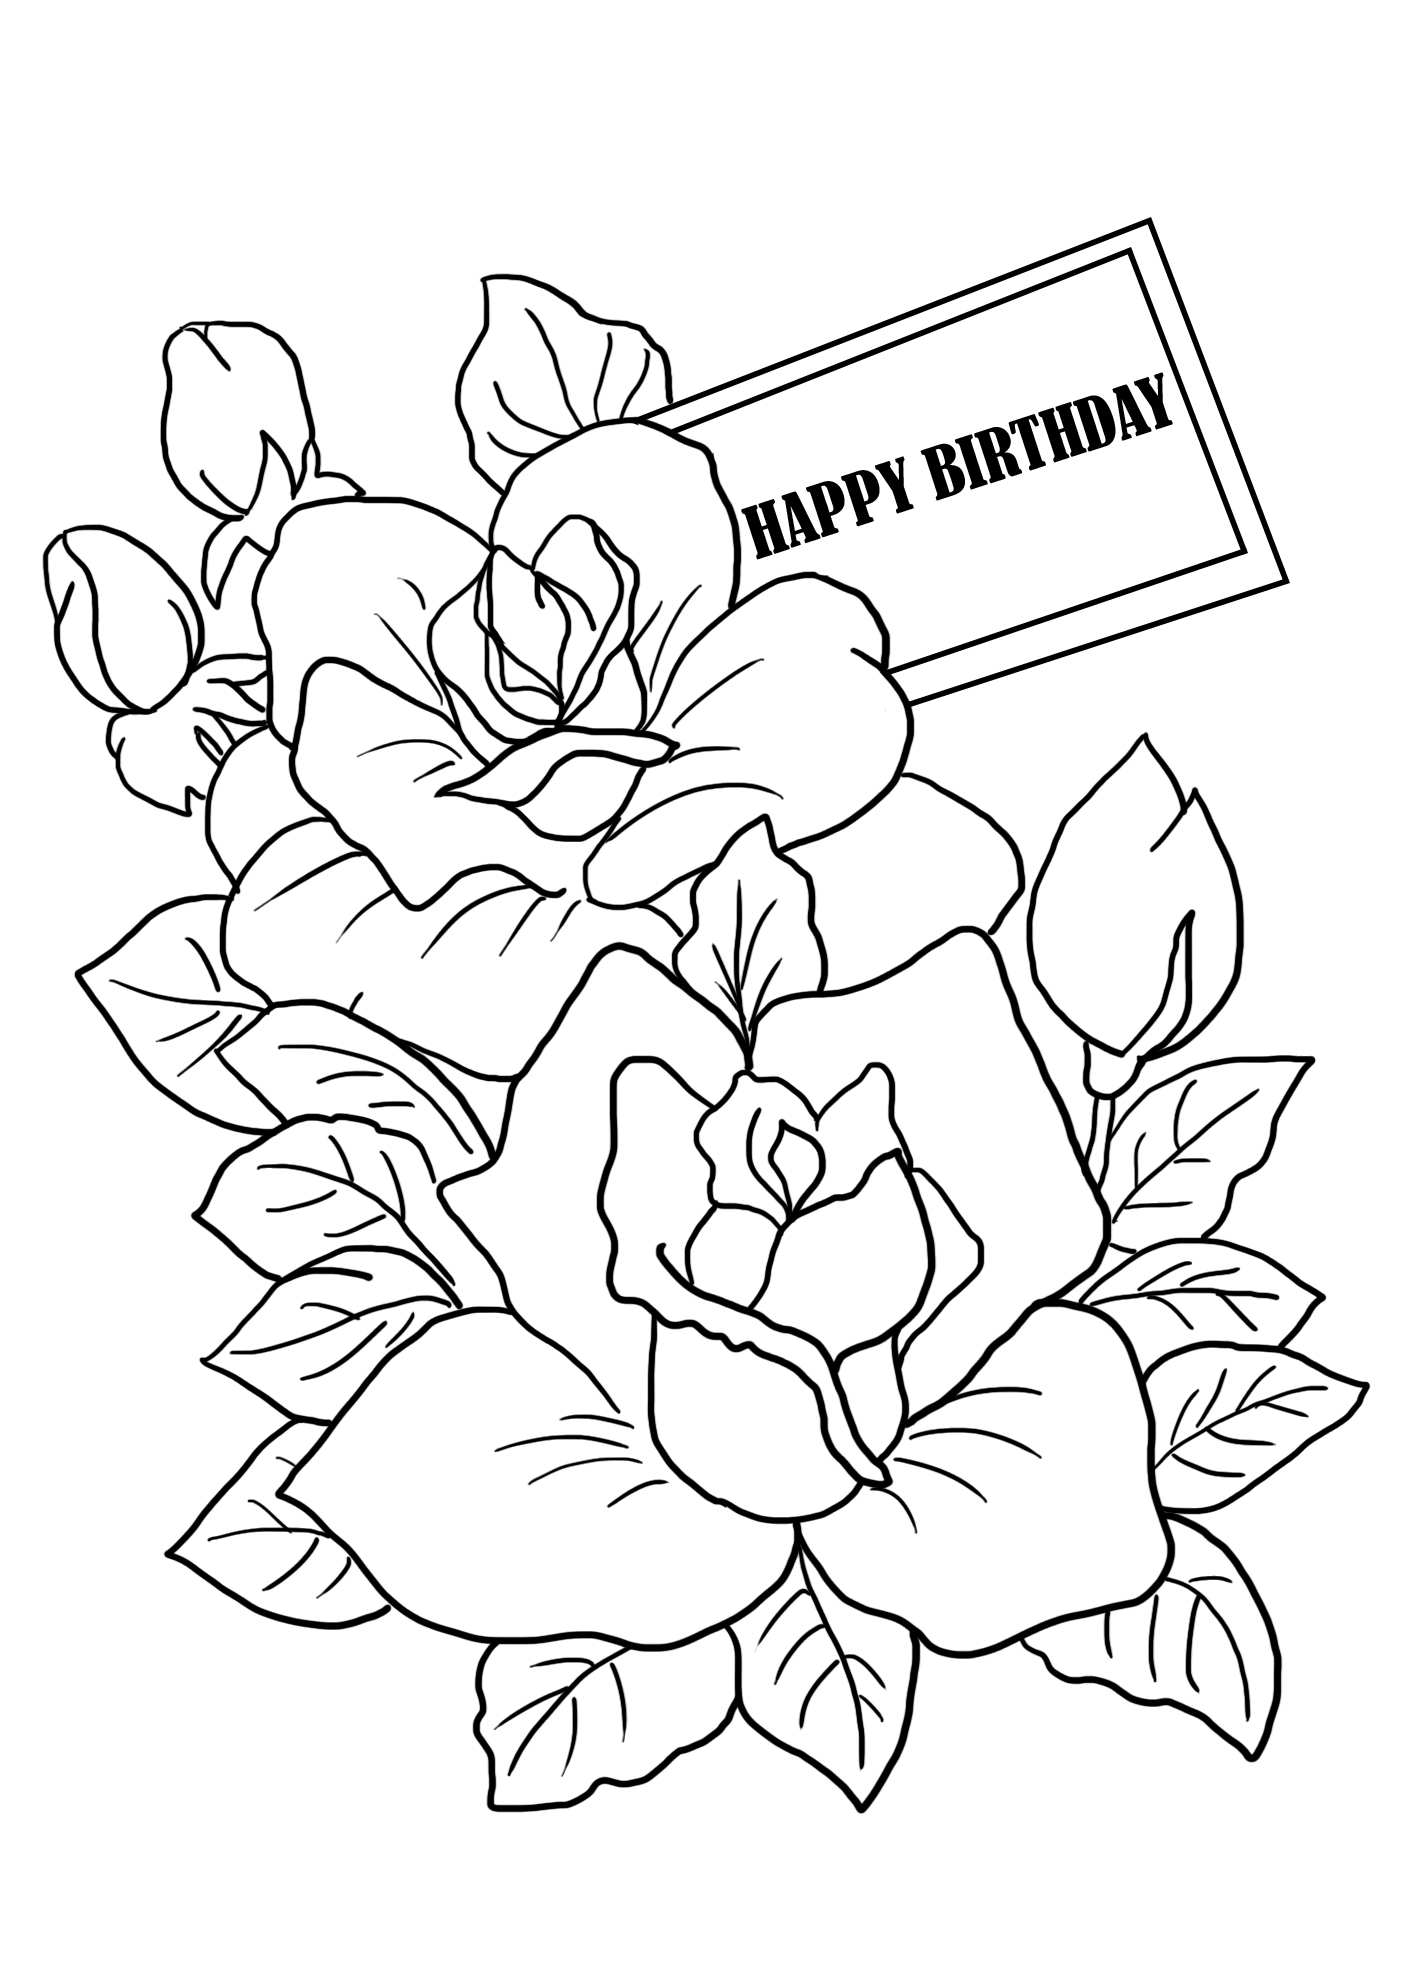 coloring printable birthday cards free birthday coloring pages cards free printable birthday coloring